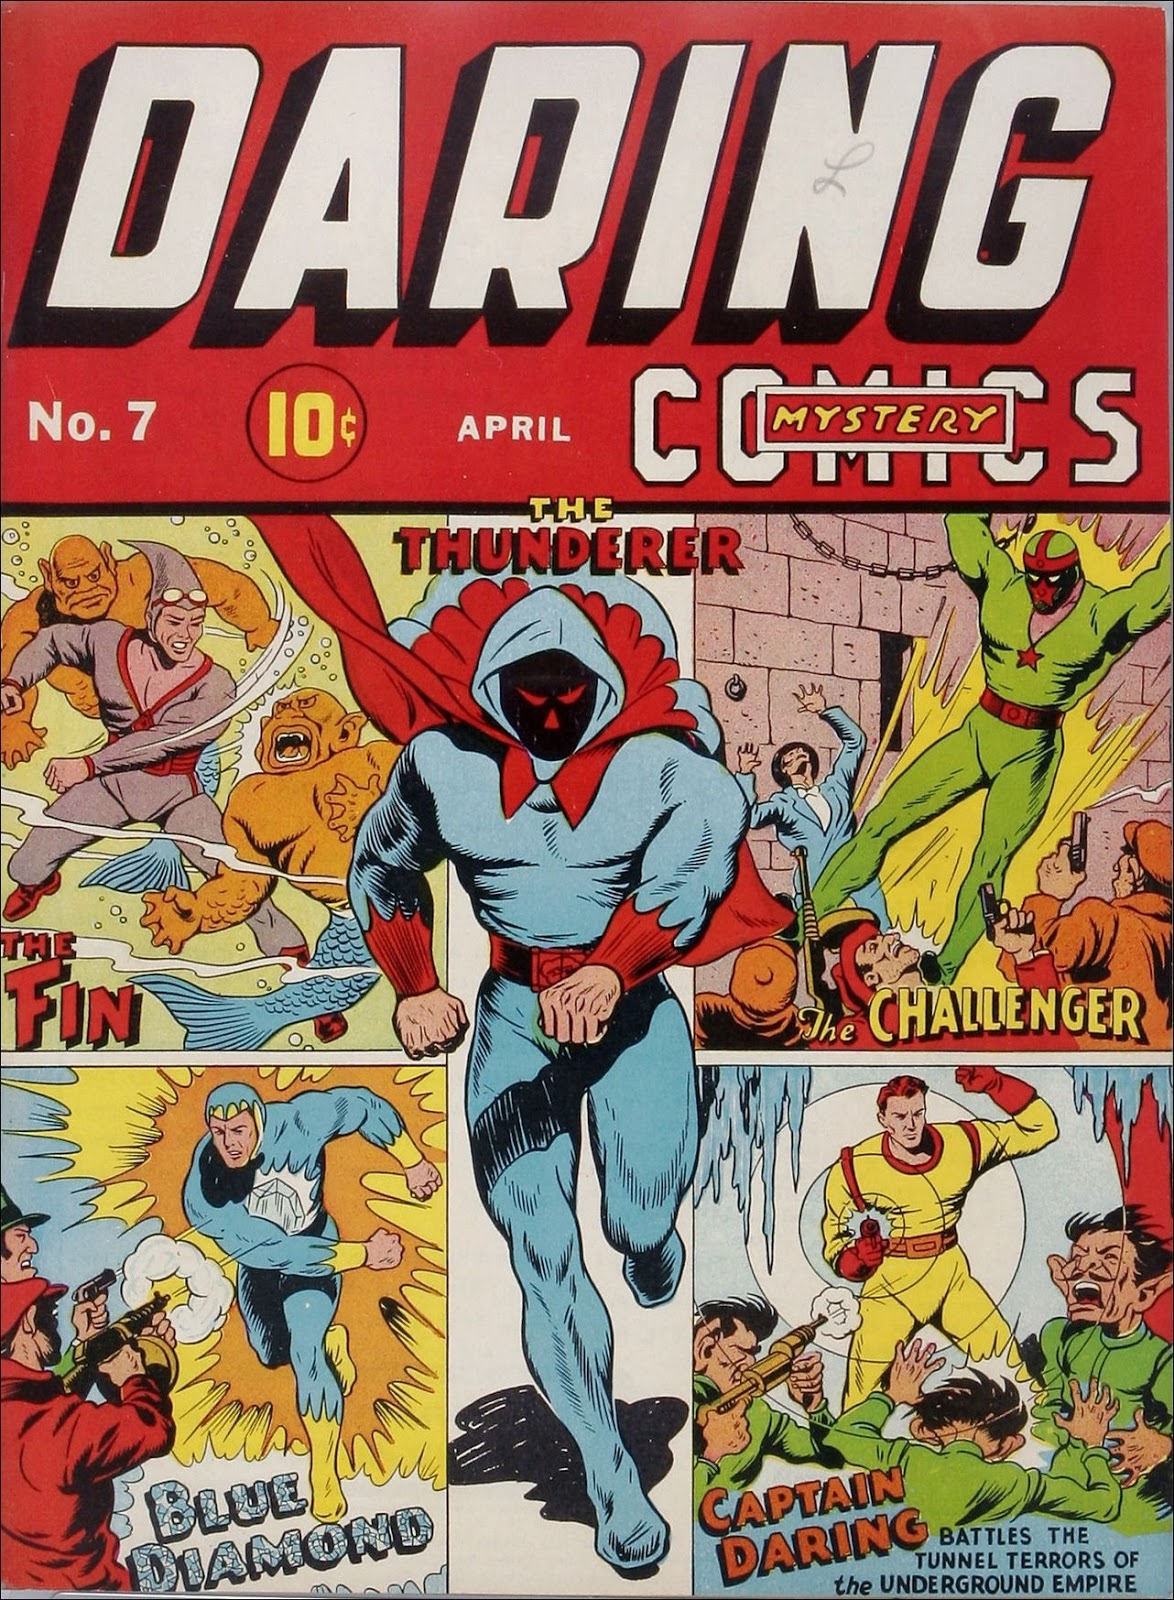 Daring Mysteryics #3, April 1940 Cover By Alex Schomburg